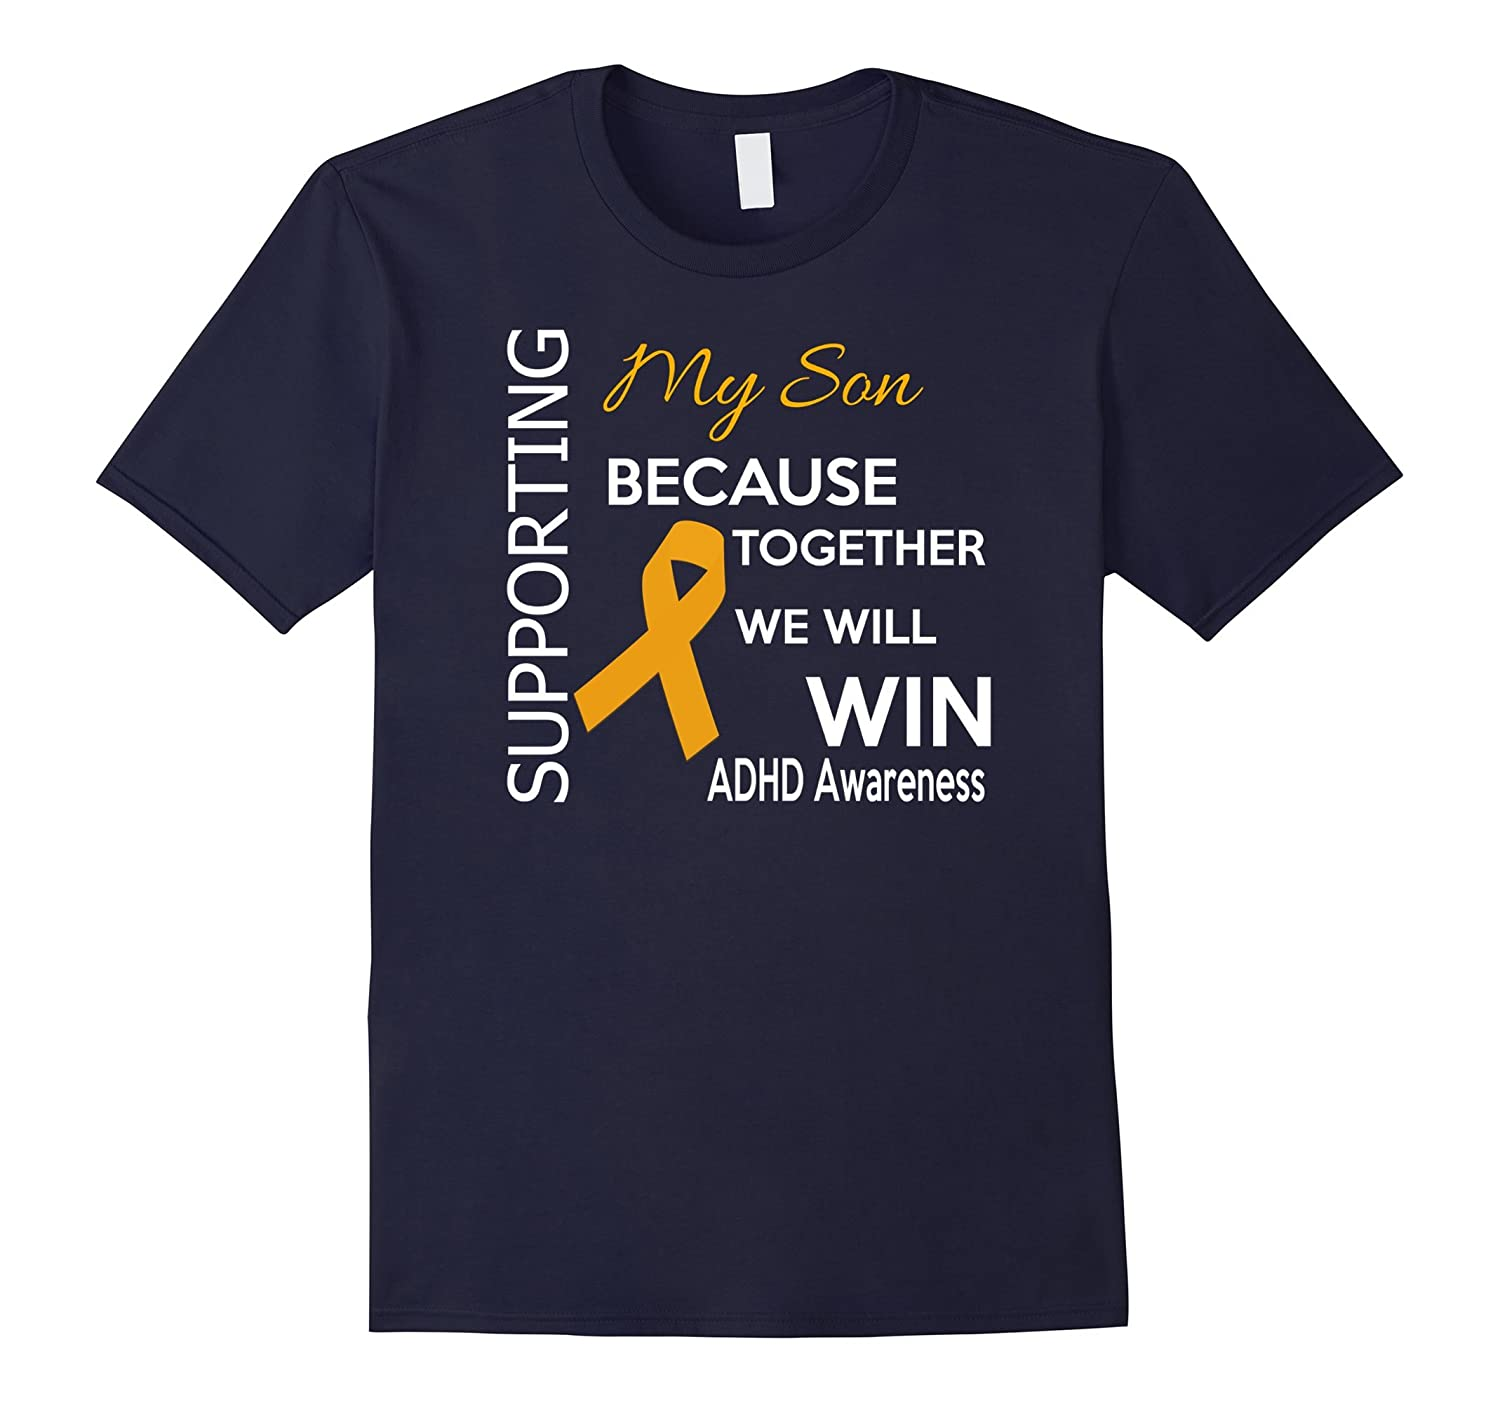 ADHD Awareness T-Shirt Supporting My Son, We Will Win!-BN